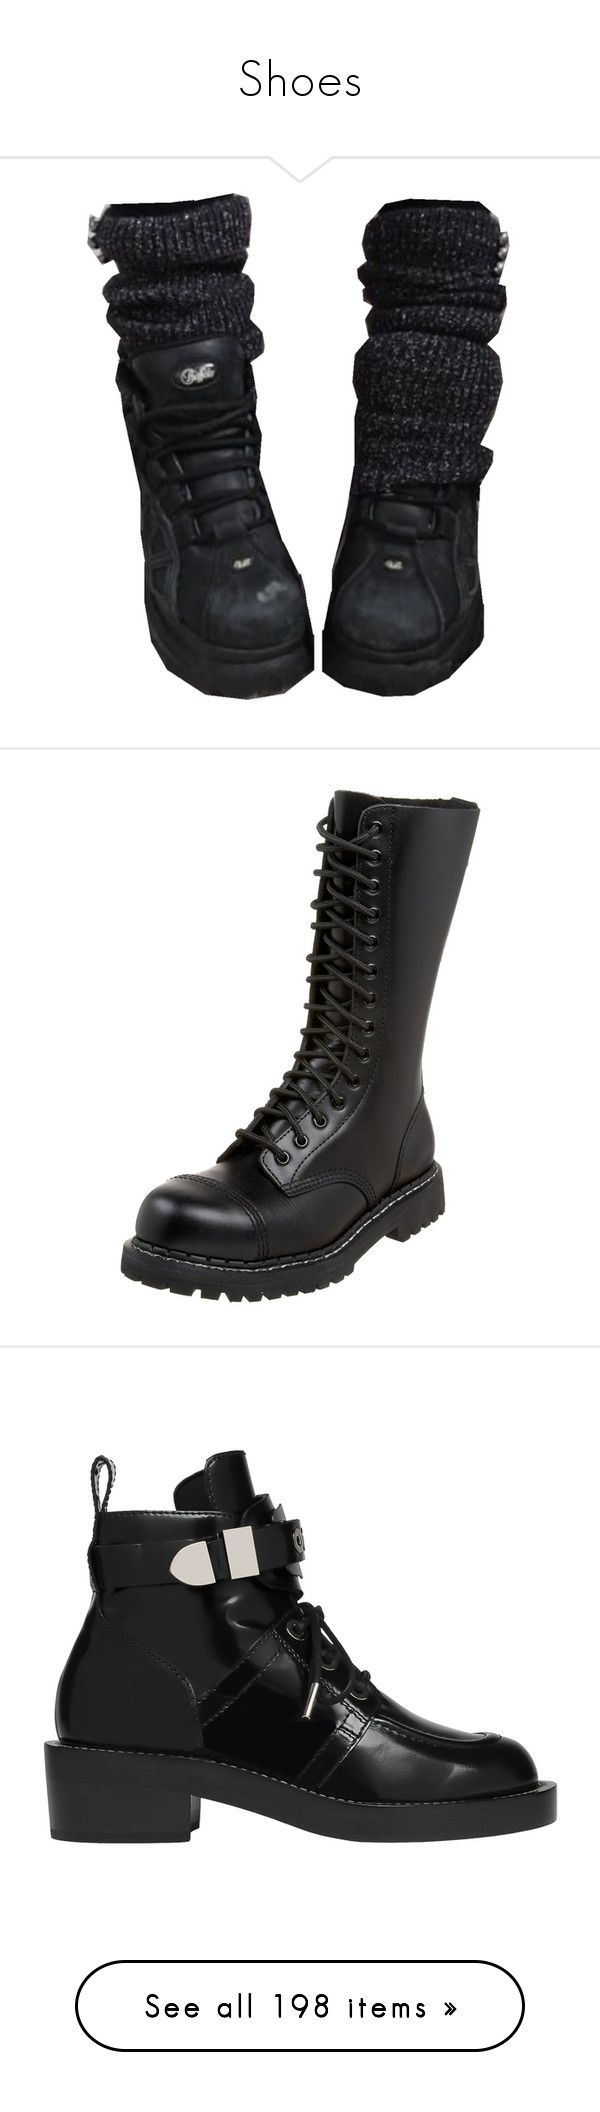 """""""Shoes"""" by avintagemystery ❤ liked on Polyvore featuring shoes, boots, footwear, safety toe shoes, stitch shoes, steel toe boots, steel toe shoes, chunky-heel boots, ankle booties and black"""